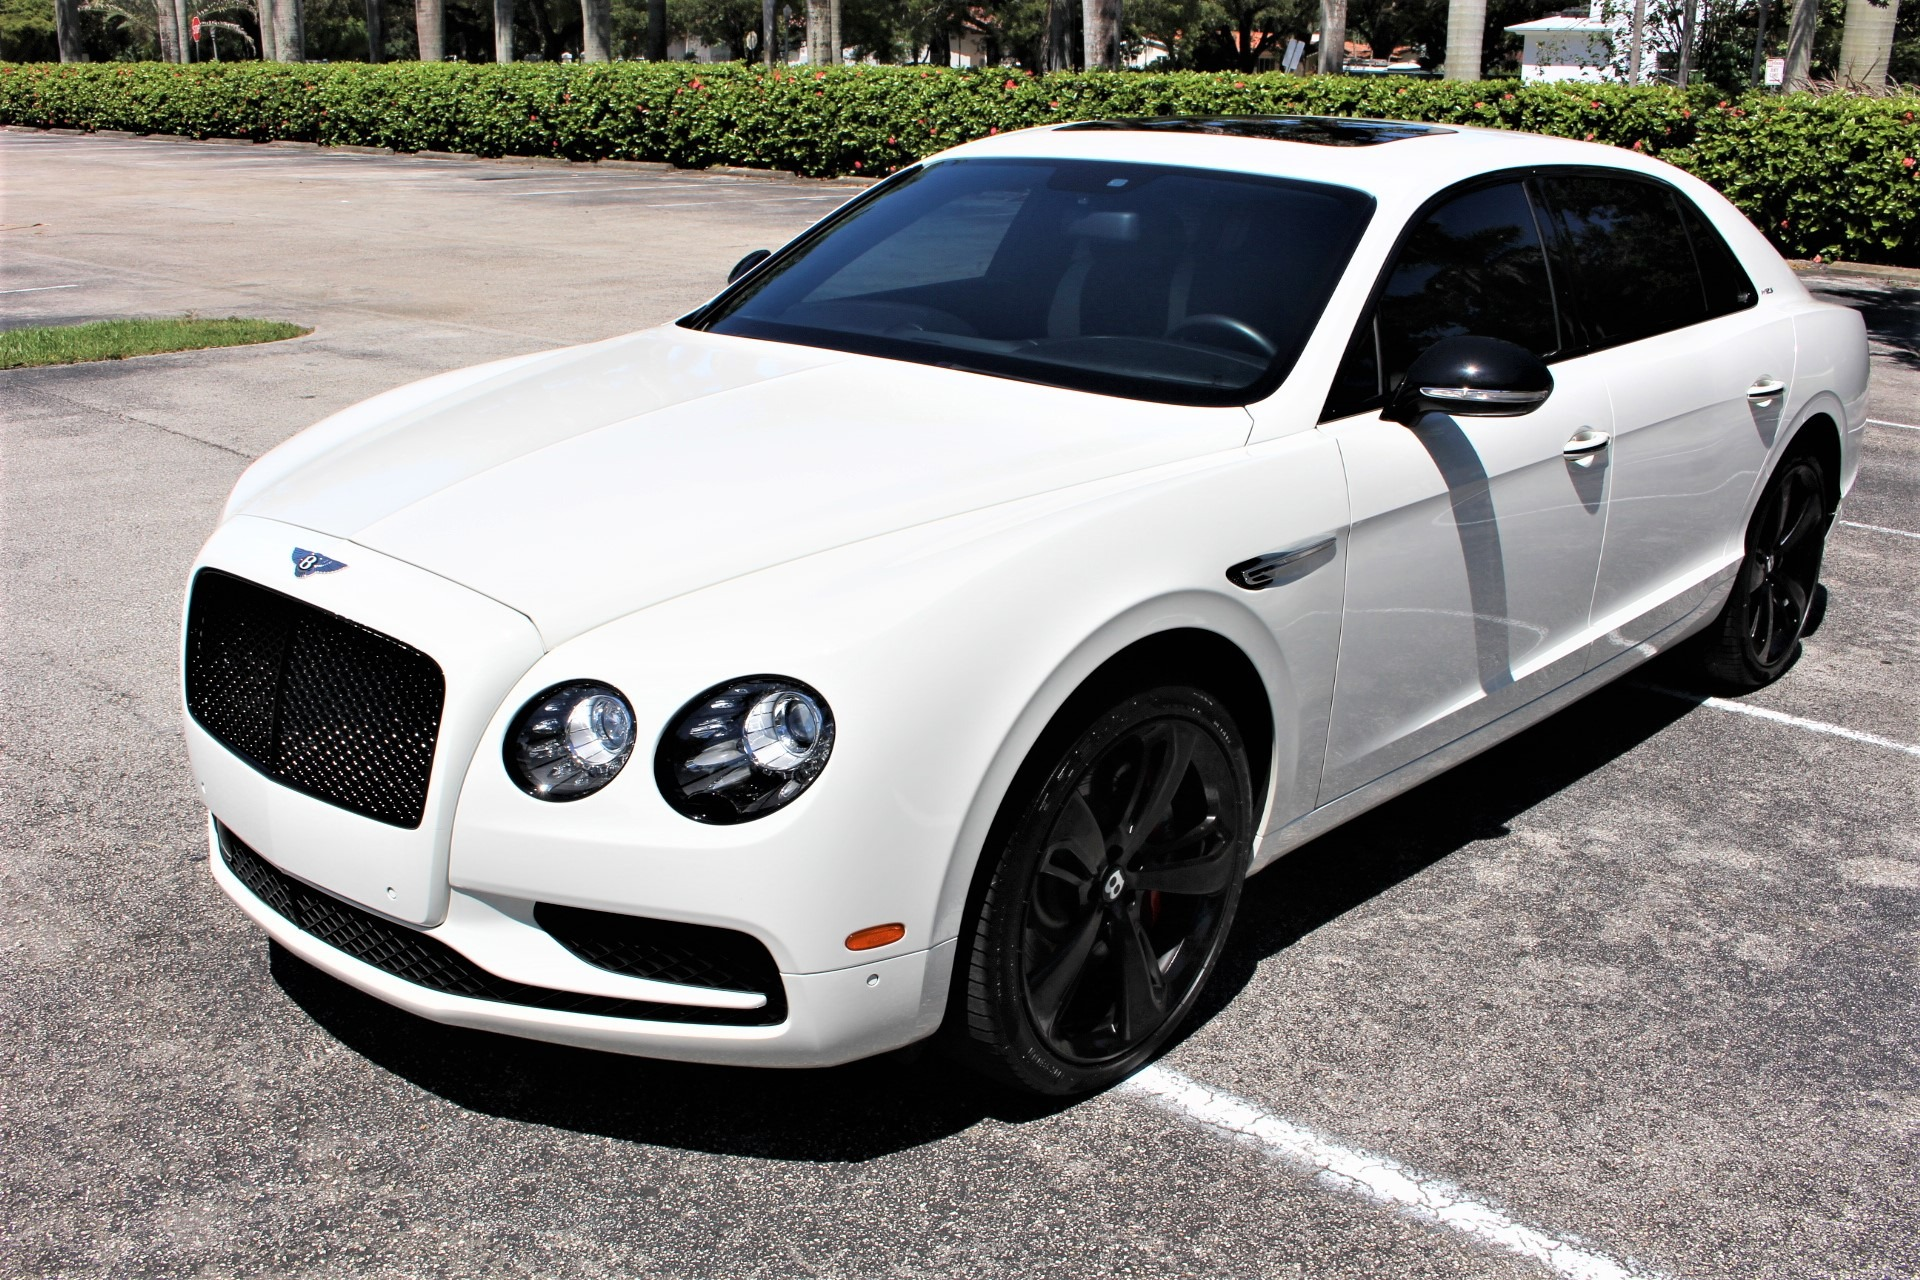 Used 2017 Bentley Flying Spur W12 S for sale $139,850 at The Gables Sports Cars in Miami FL 33146 3